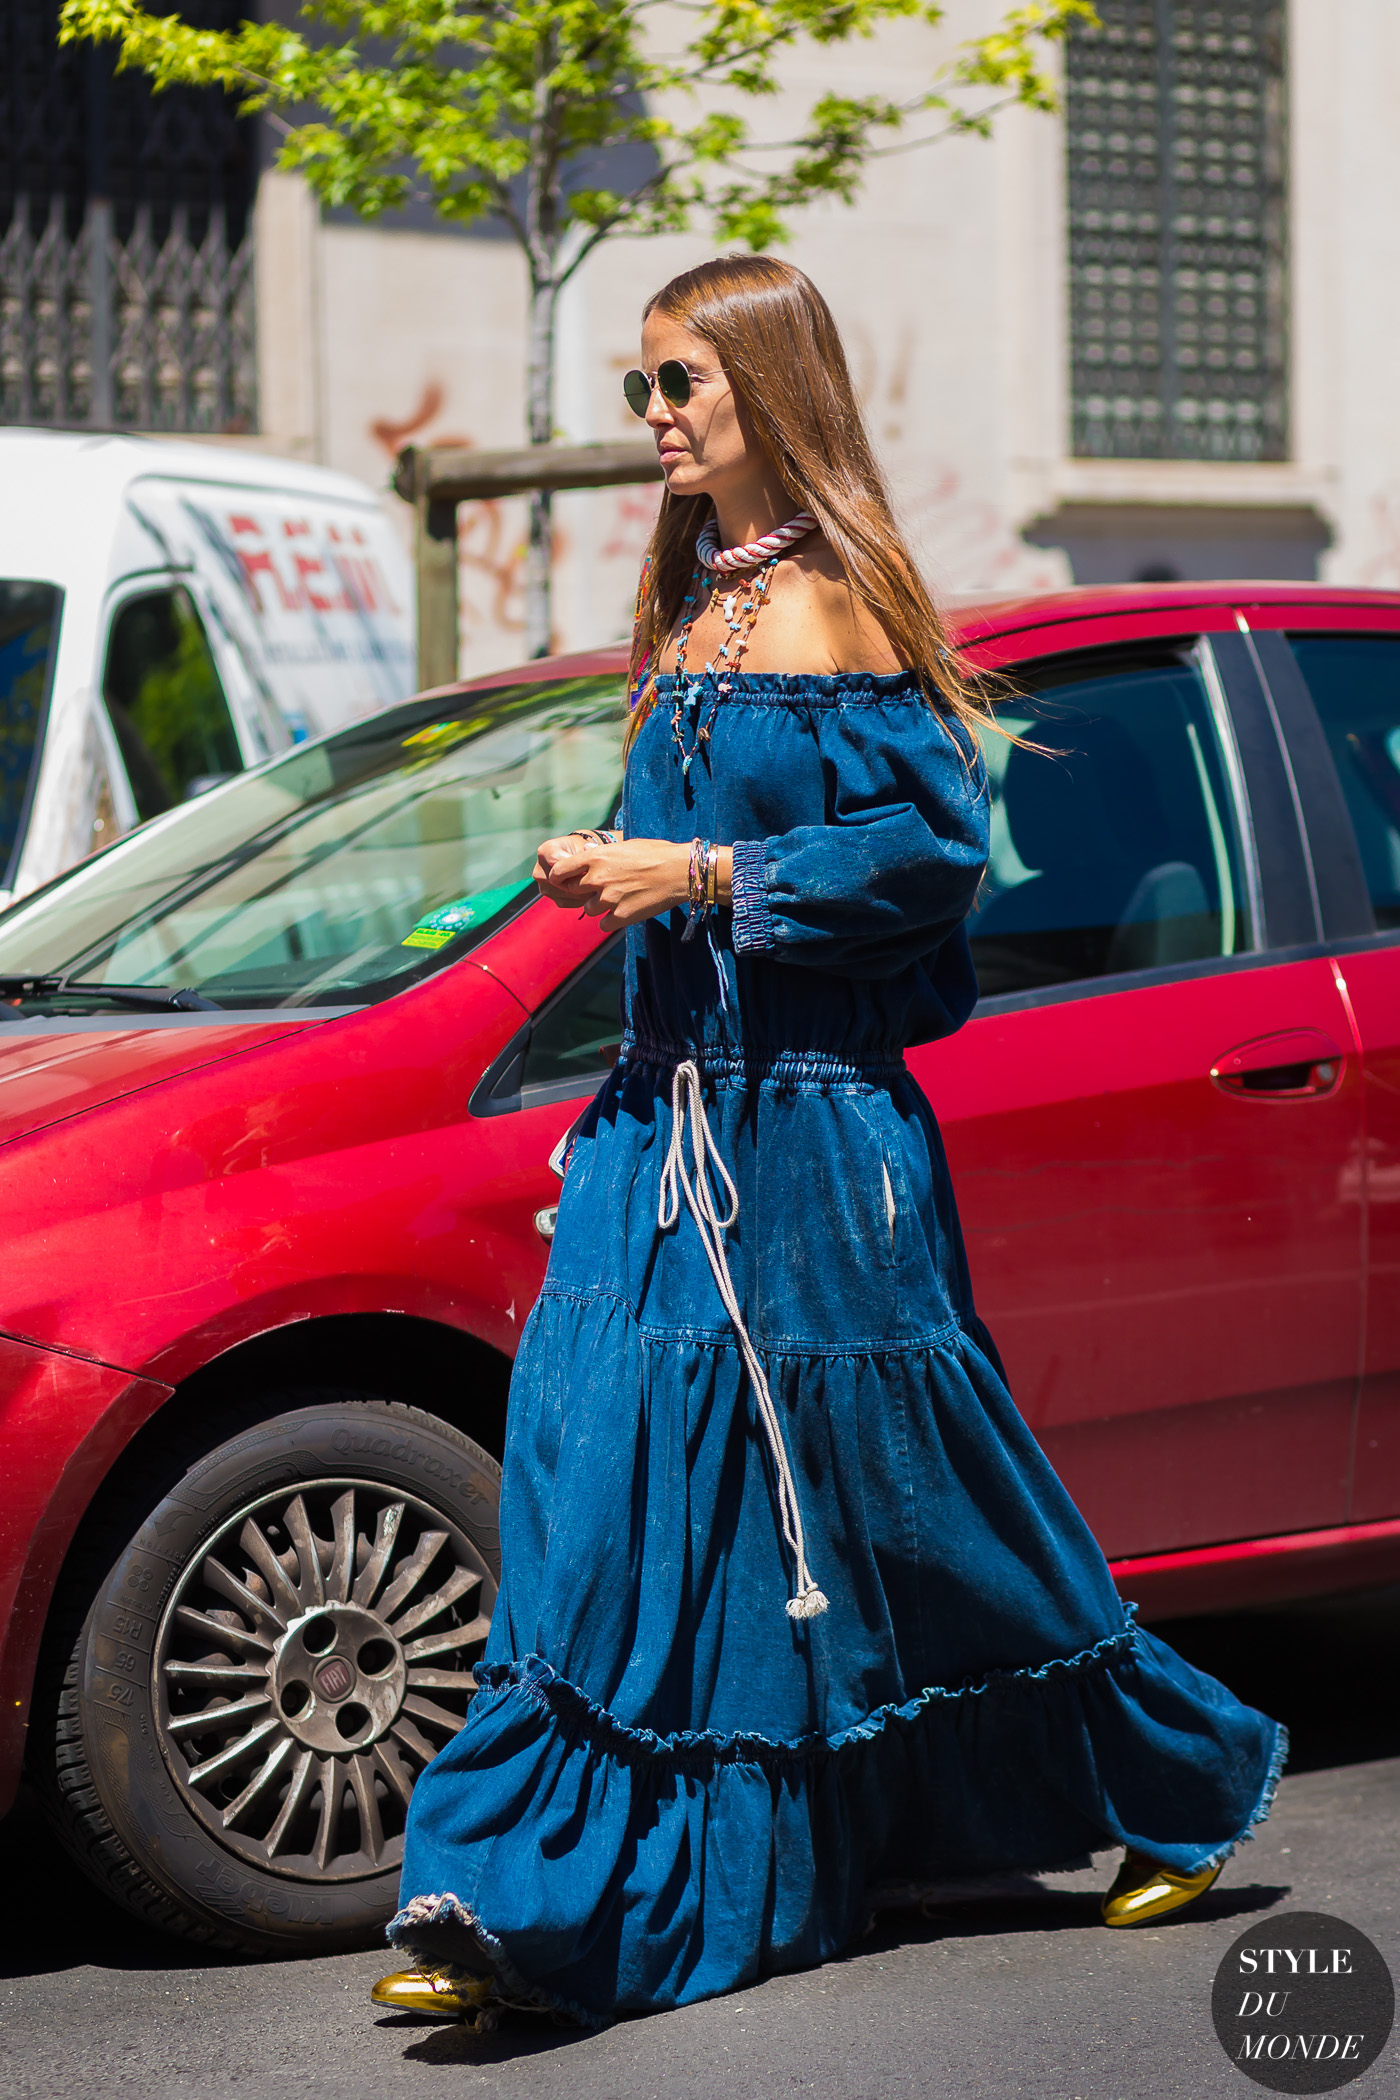 Carlotta Oddi Street Style Street Fashion Streetsnaps by STYLEDUMONDE Street Style Fashion Photography